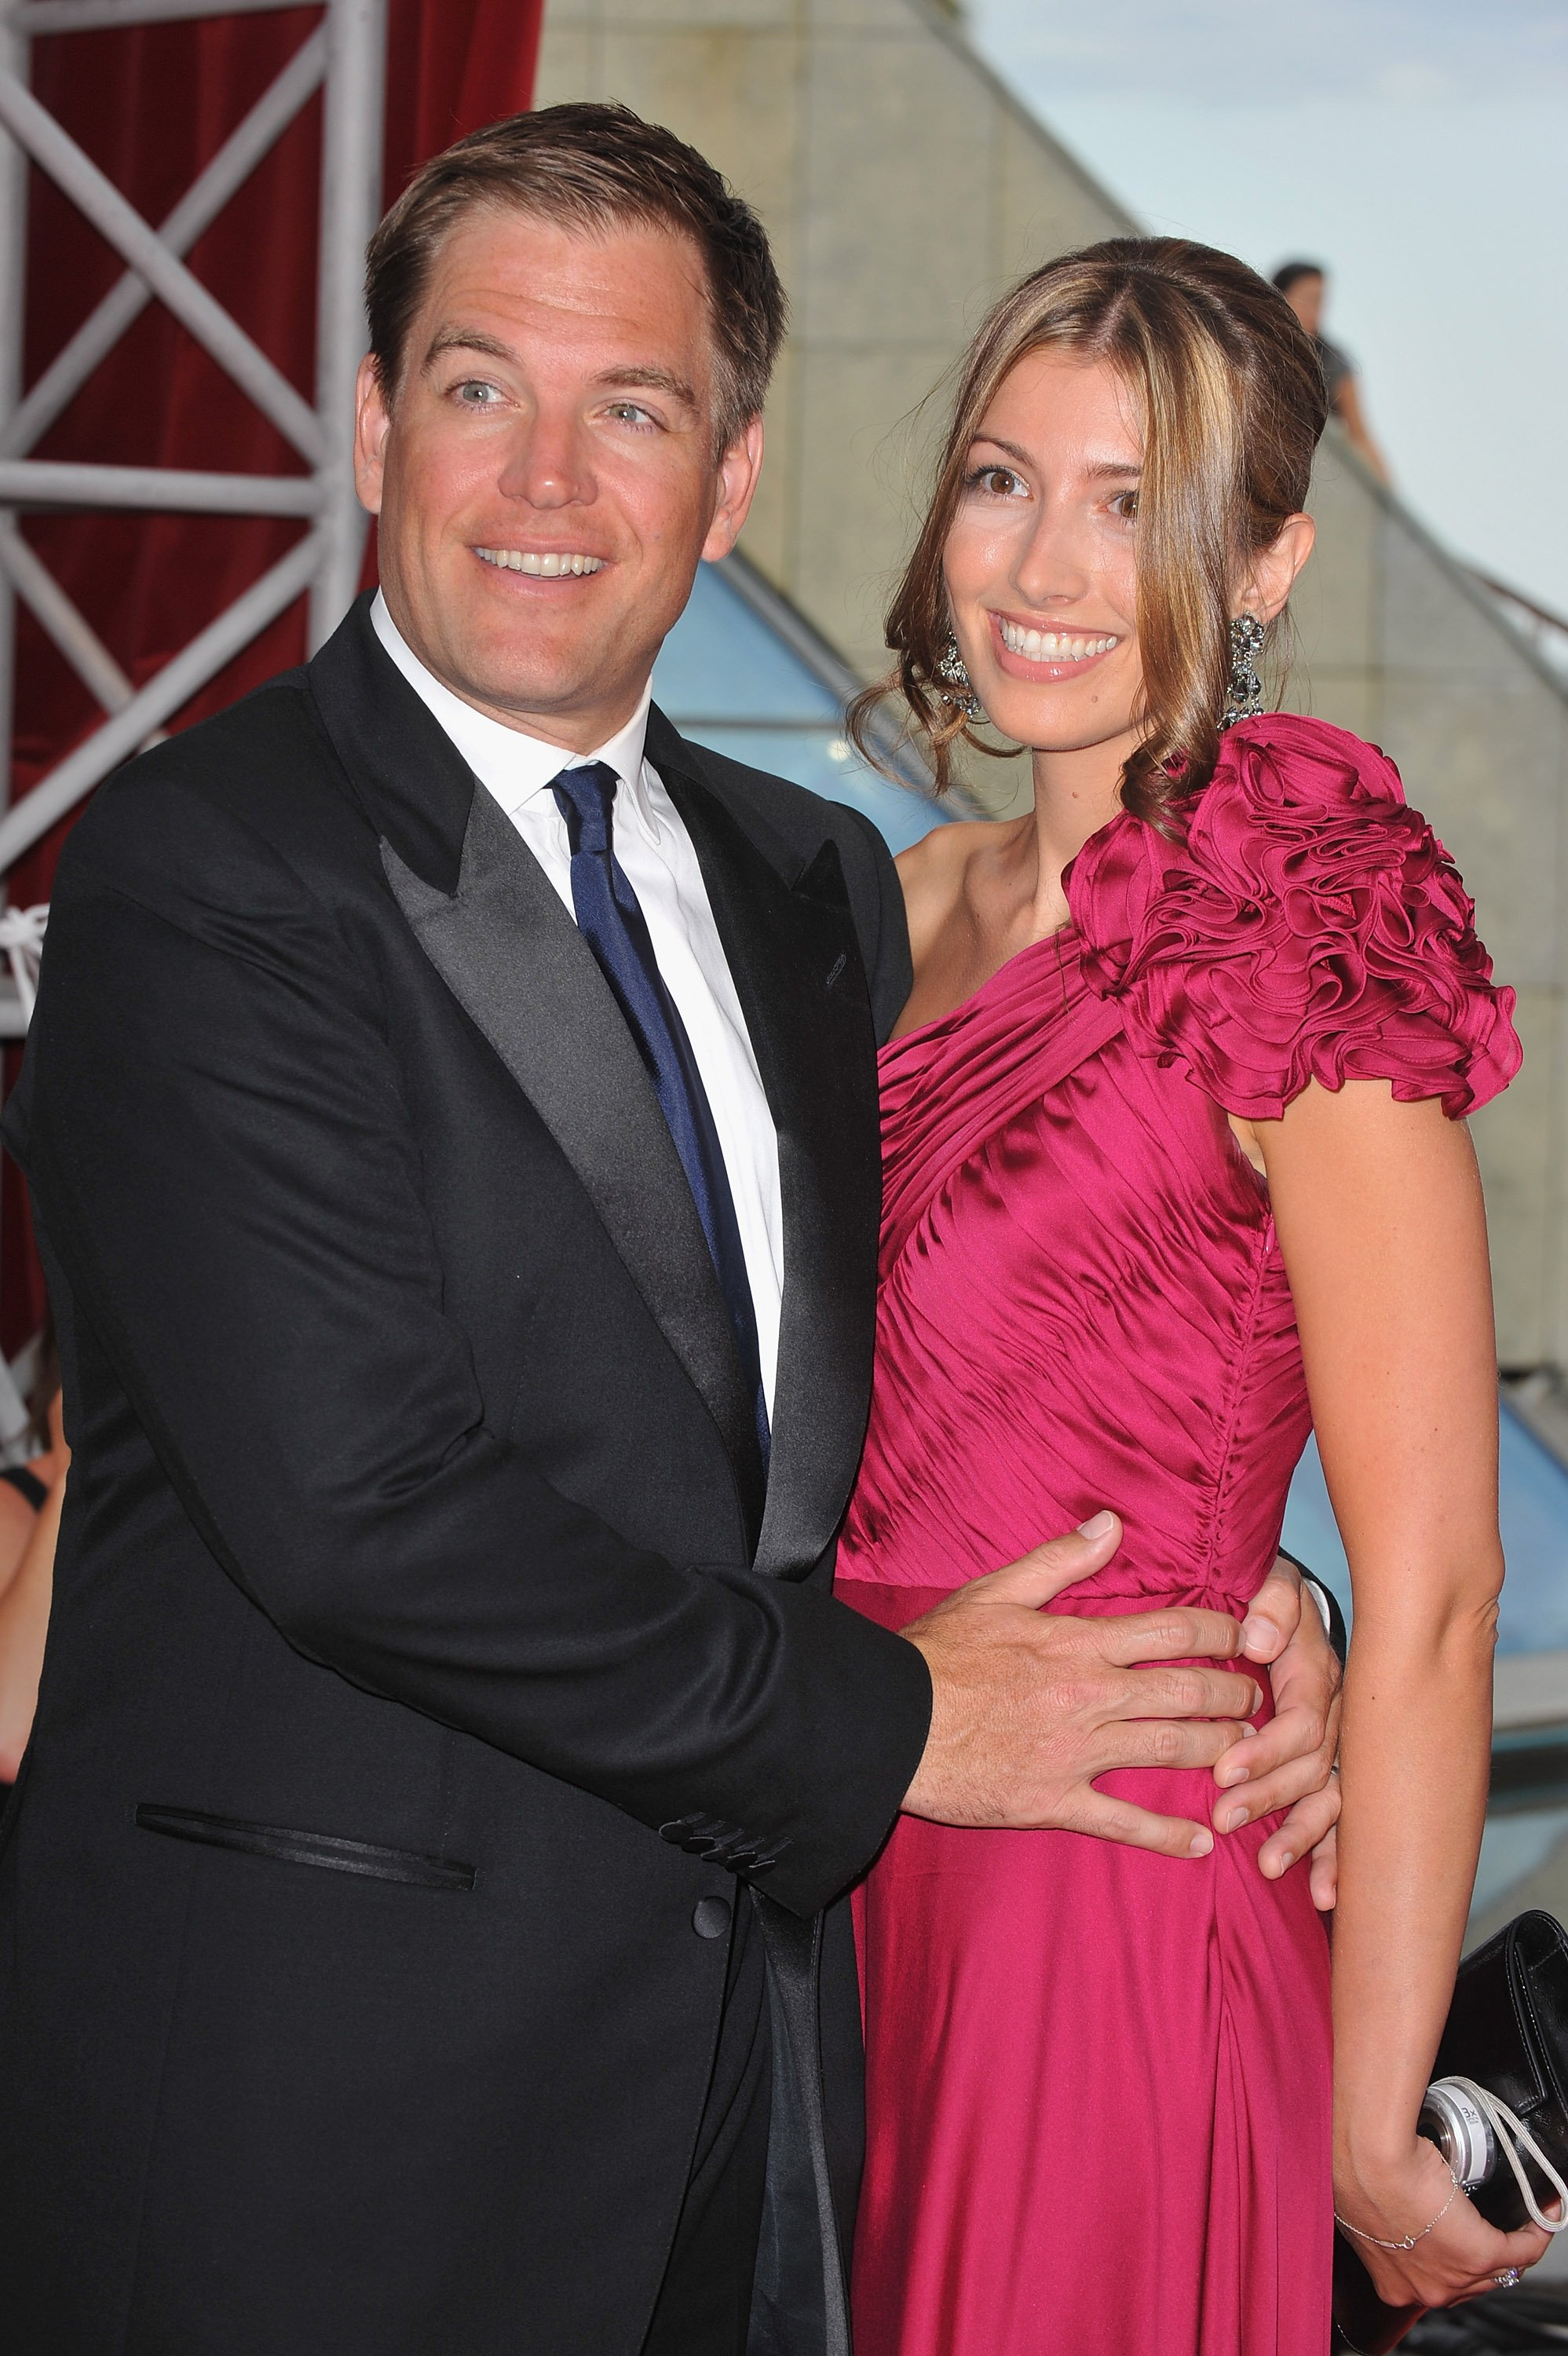 Michael Weatherly and his wife Bojana Jankovic arrive at the Closing Ceremony of the 2010 Monte Carlo Television Festival . | Source: Getty Images